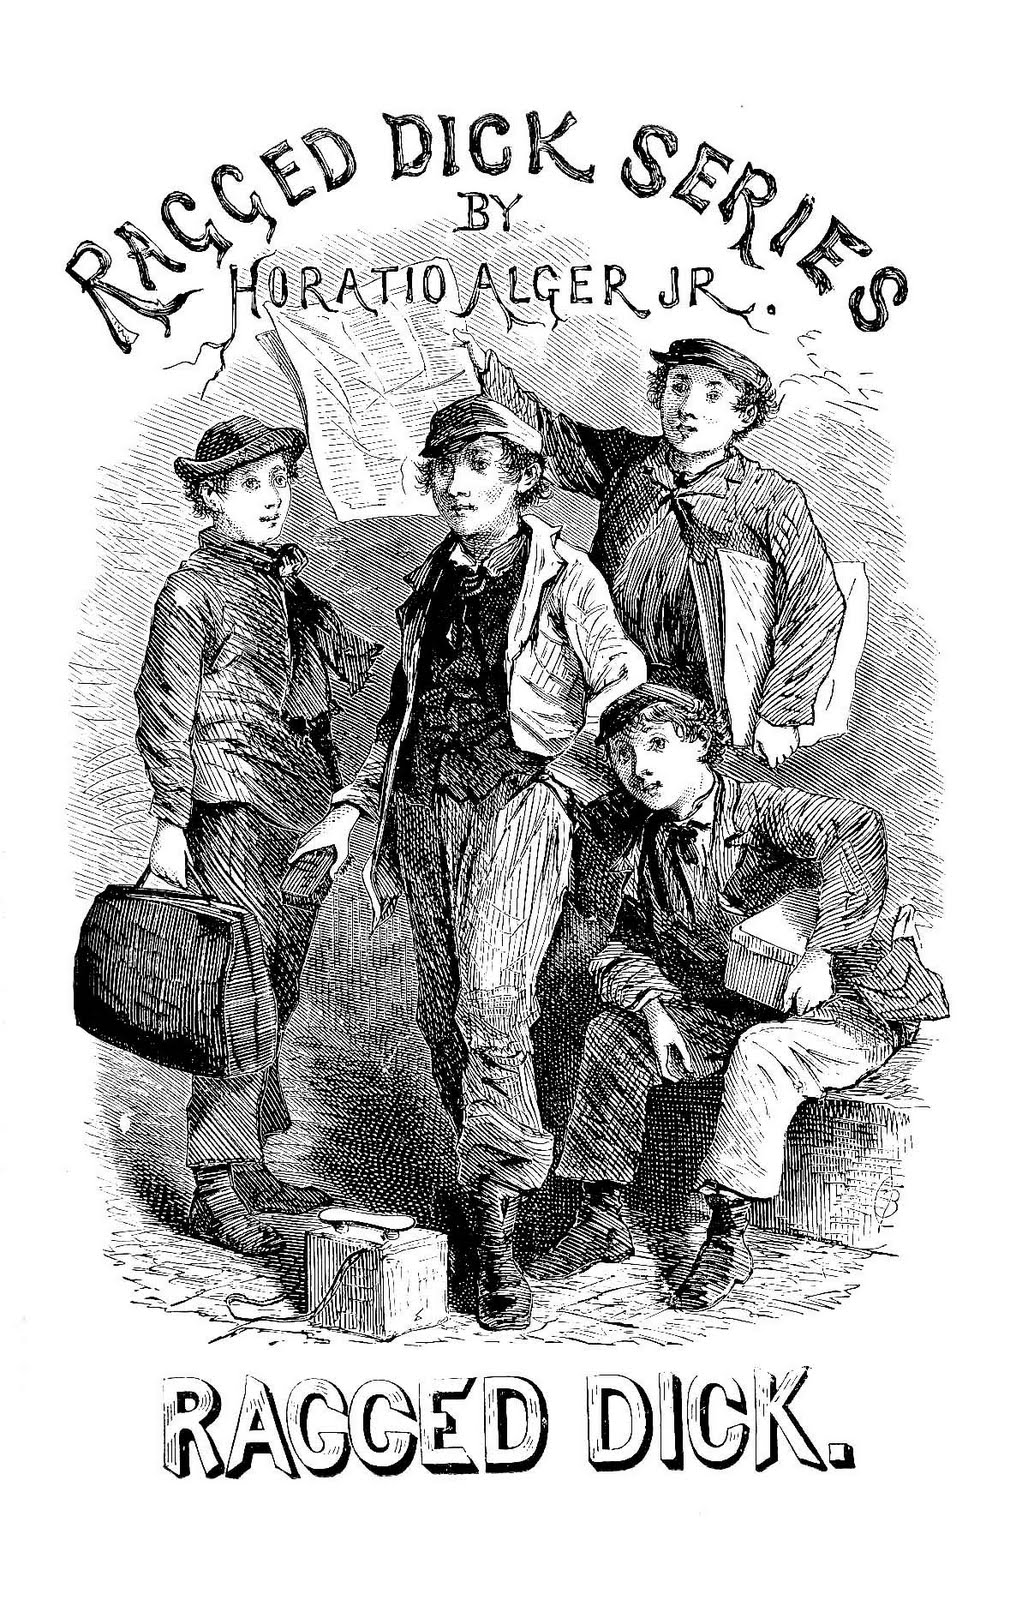 dick essay ragged View this essay on horatio alger ragged dick life in new york city at the end of the 19th century was exciting but tumultuous social class stratifications rose.